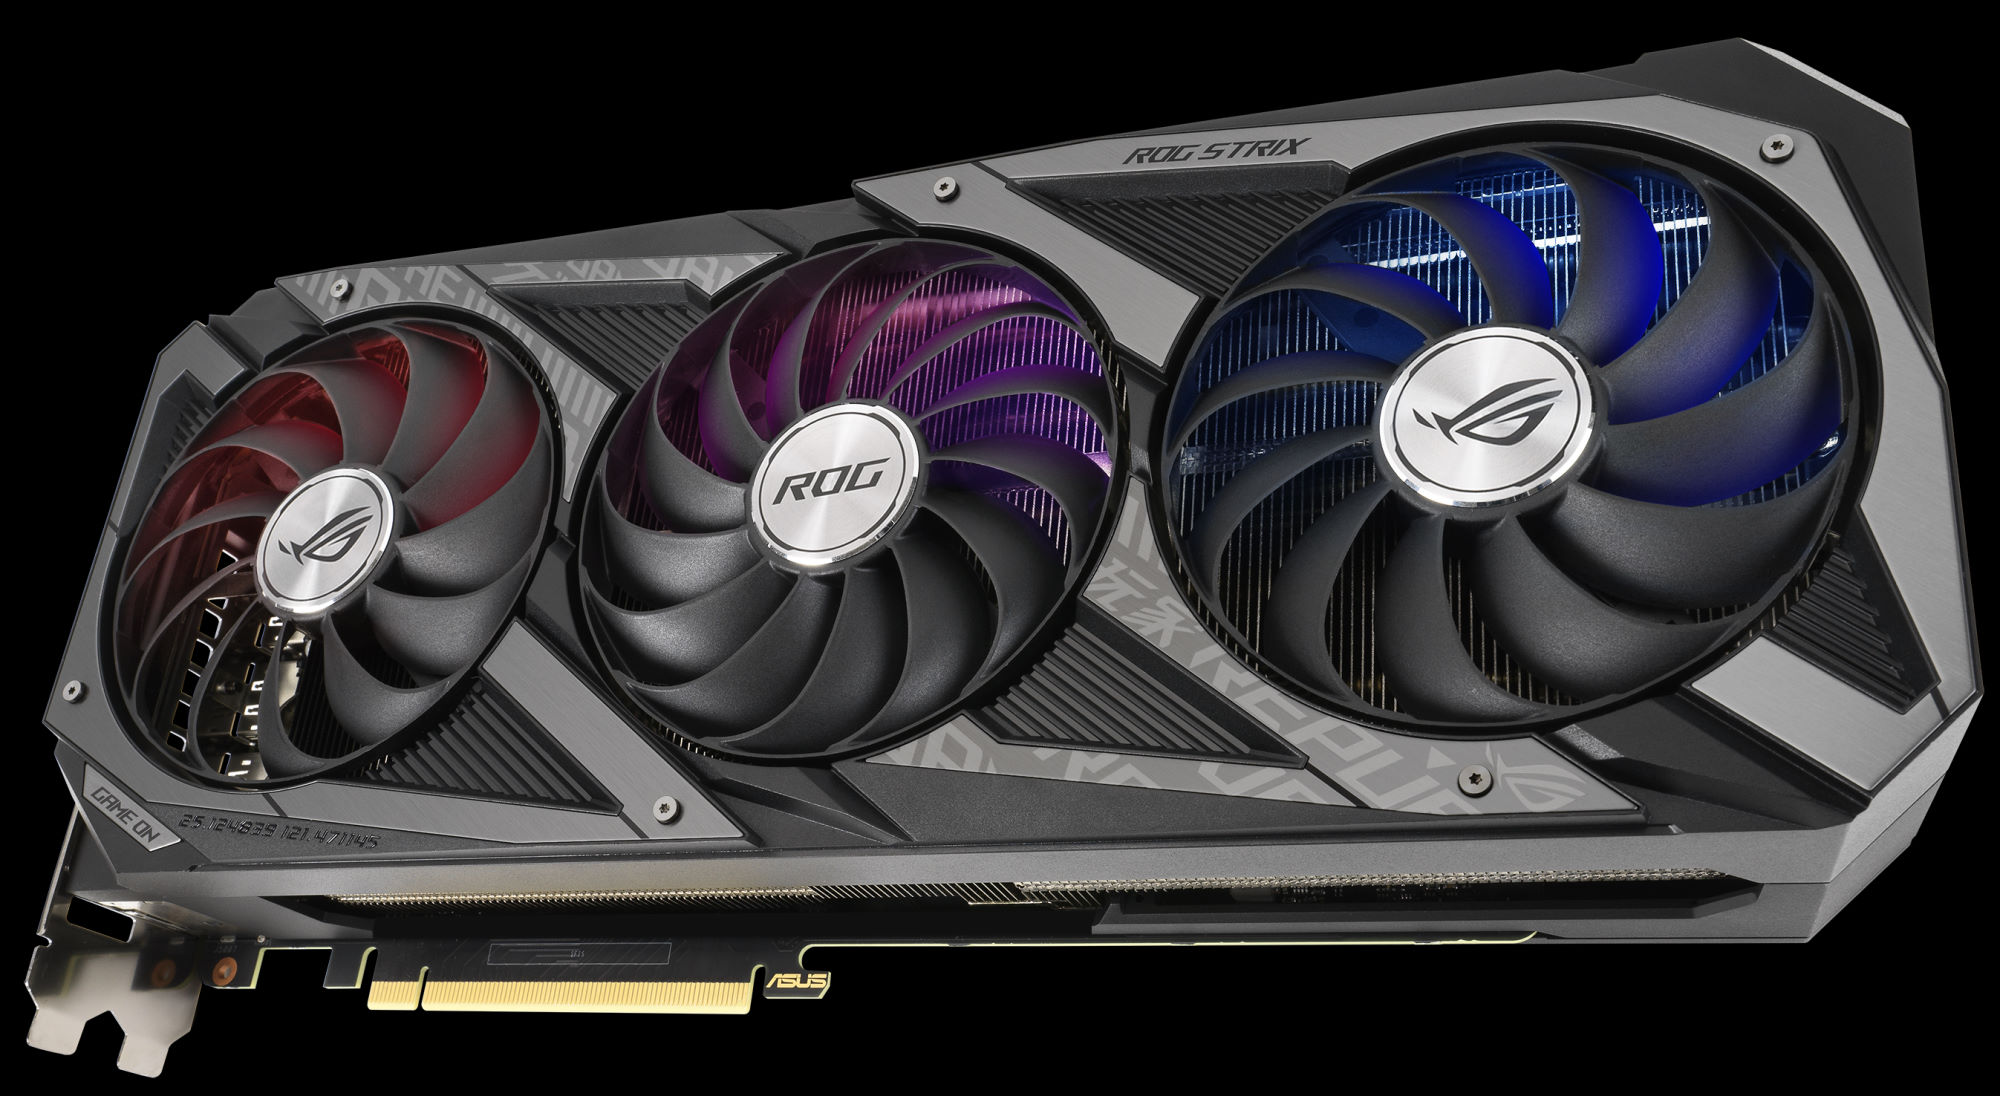 1598955792664 - Asus Nvidia Geforce RTX 3090 & 3080 Press Release